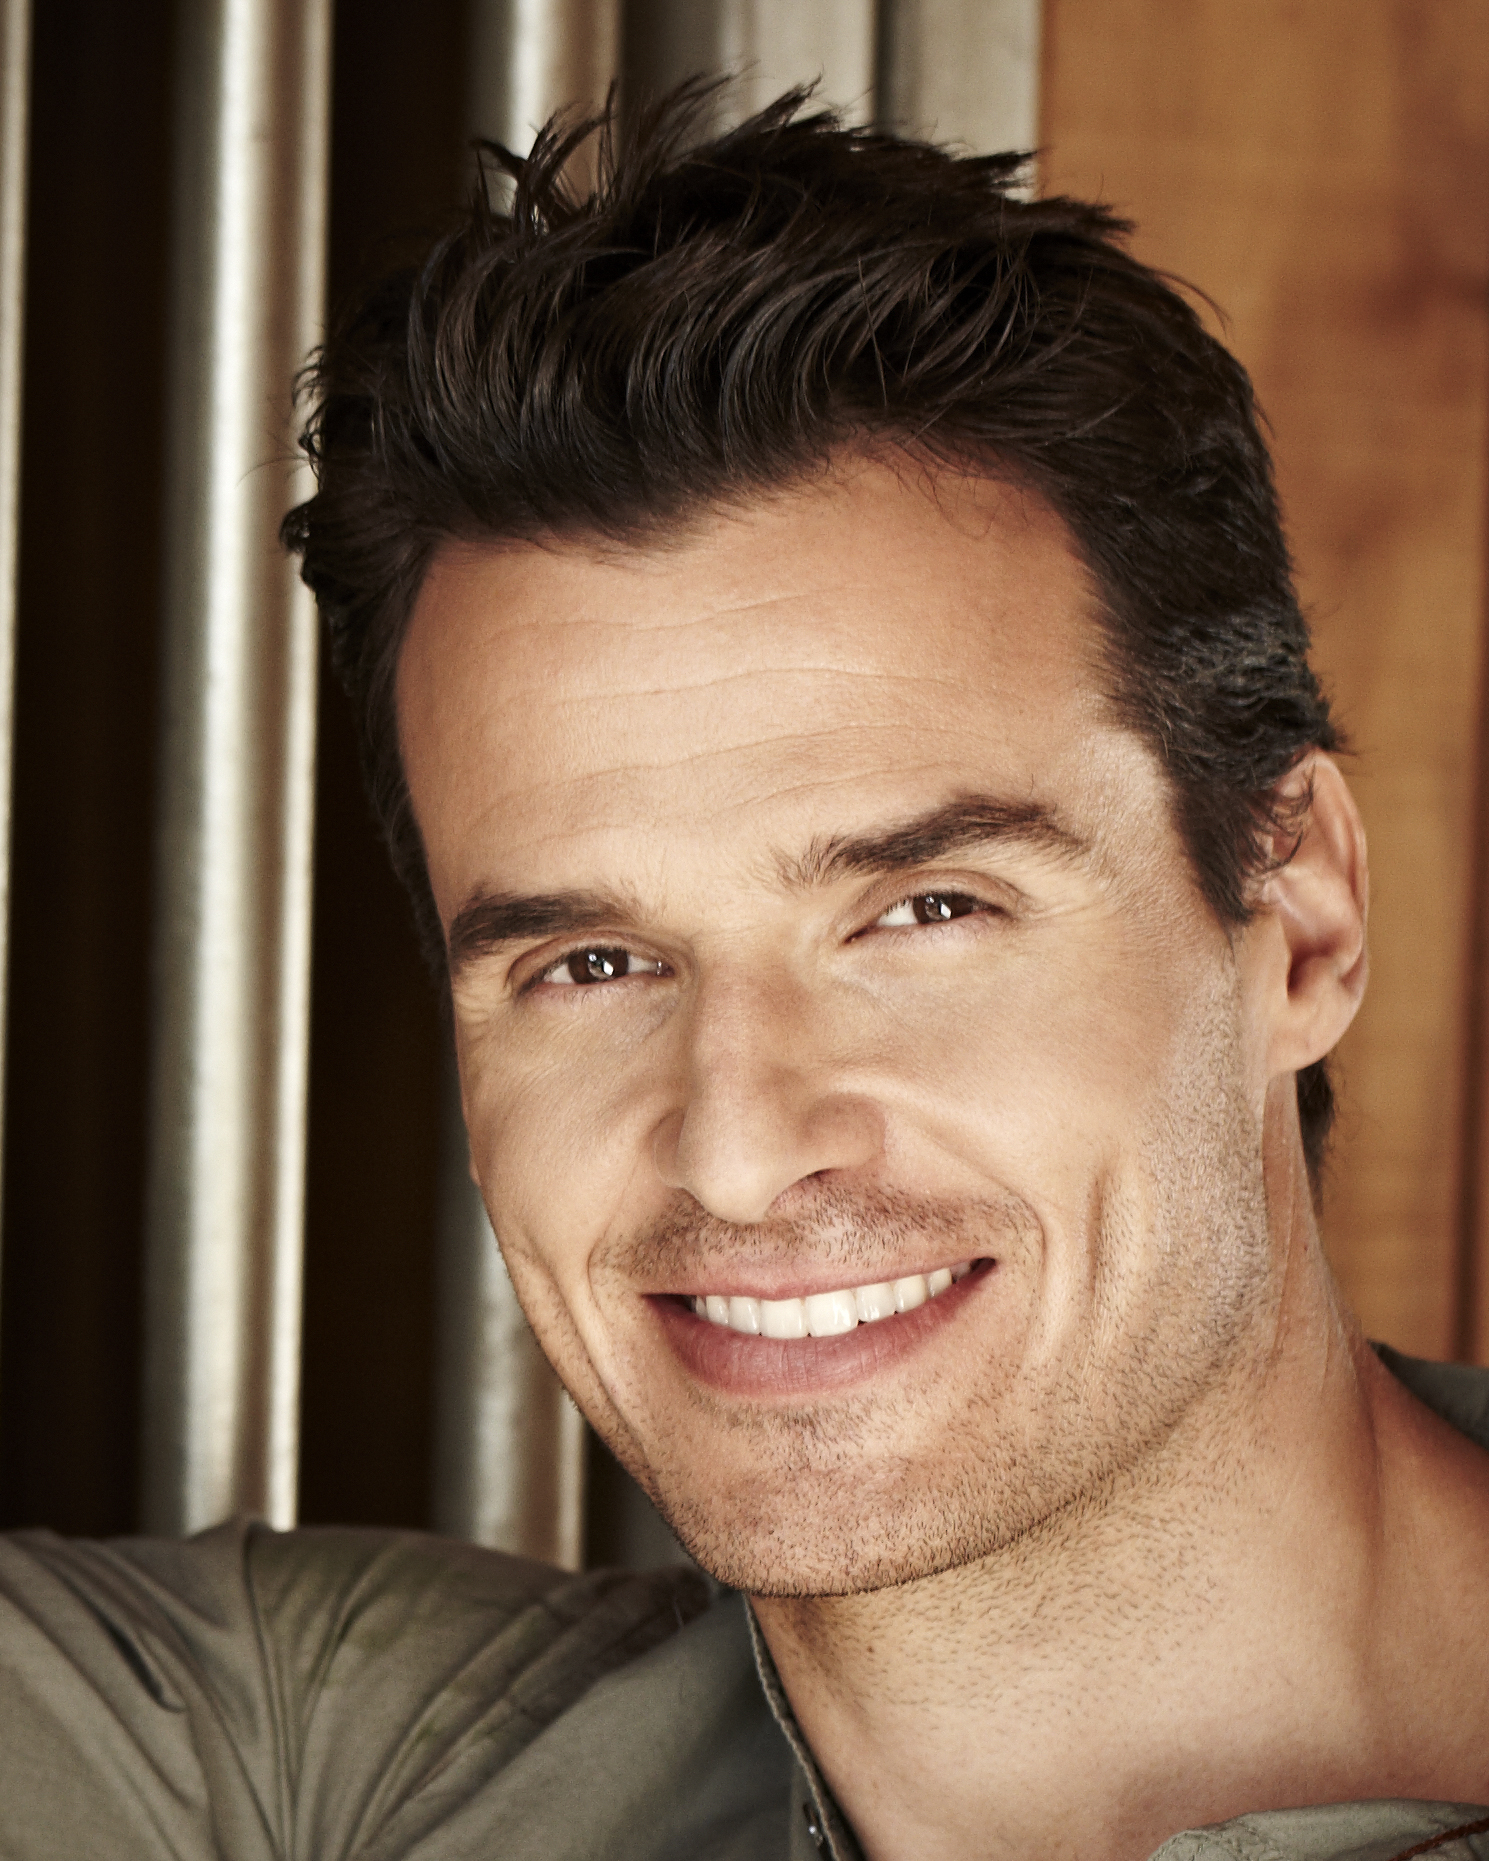 The 48-year old son of father (?) and mother(?) Antonio Sabàto Jr. in 2020 photo. Antonio Sabàto Jr. earned a million dollar salary - leaving the net worth at million in 2020